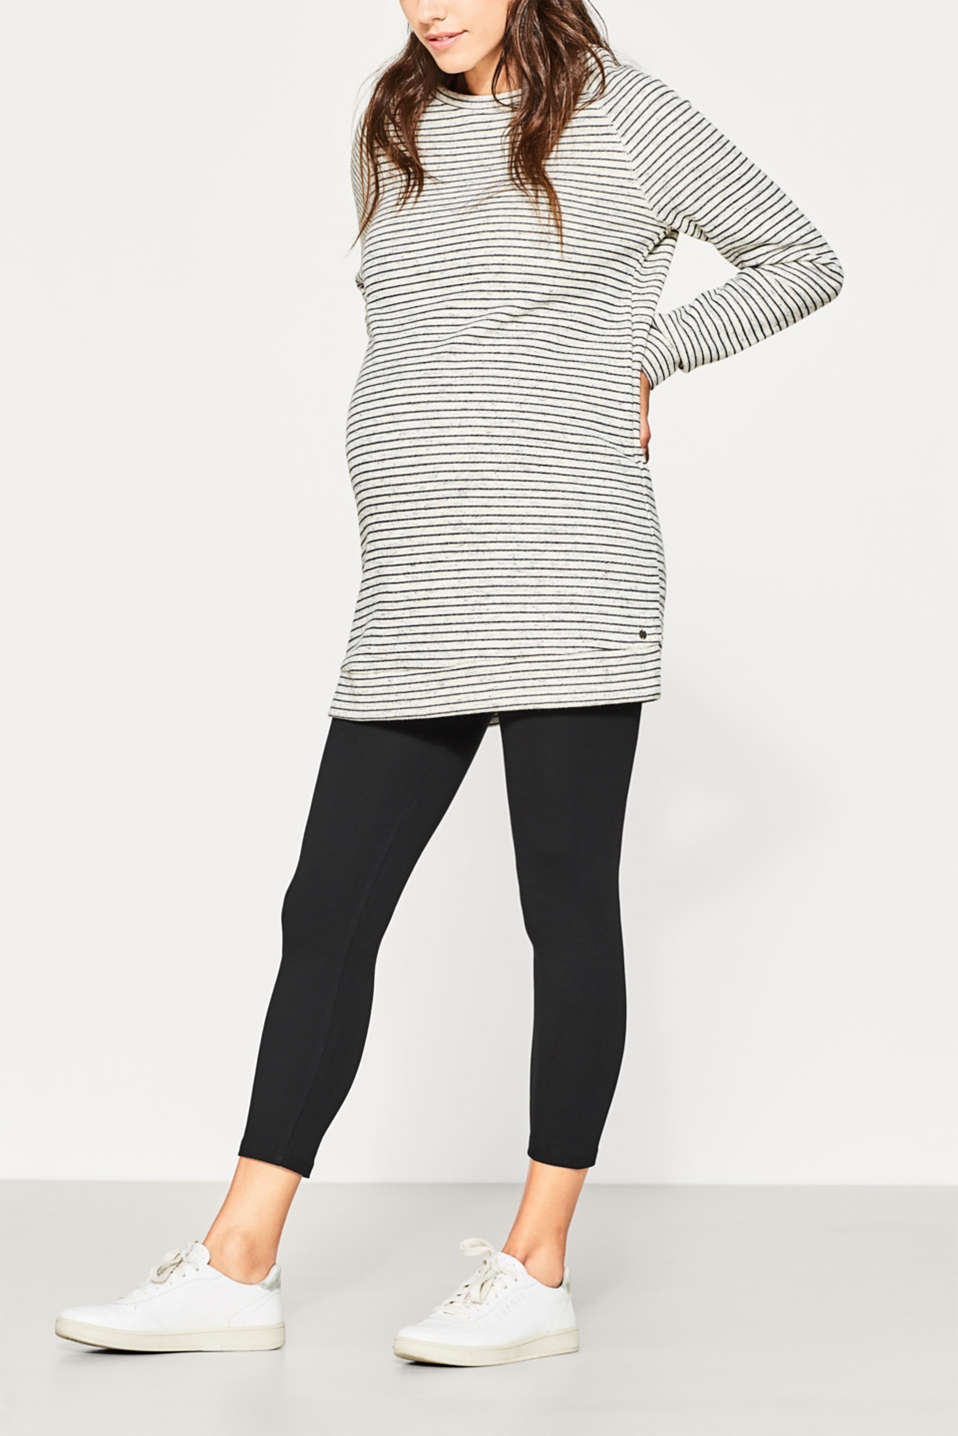 Esprit - 7/8 leggings with under-bump waistband